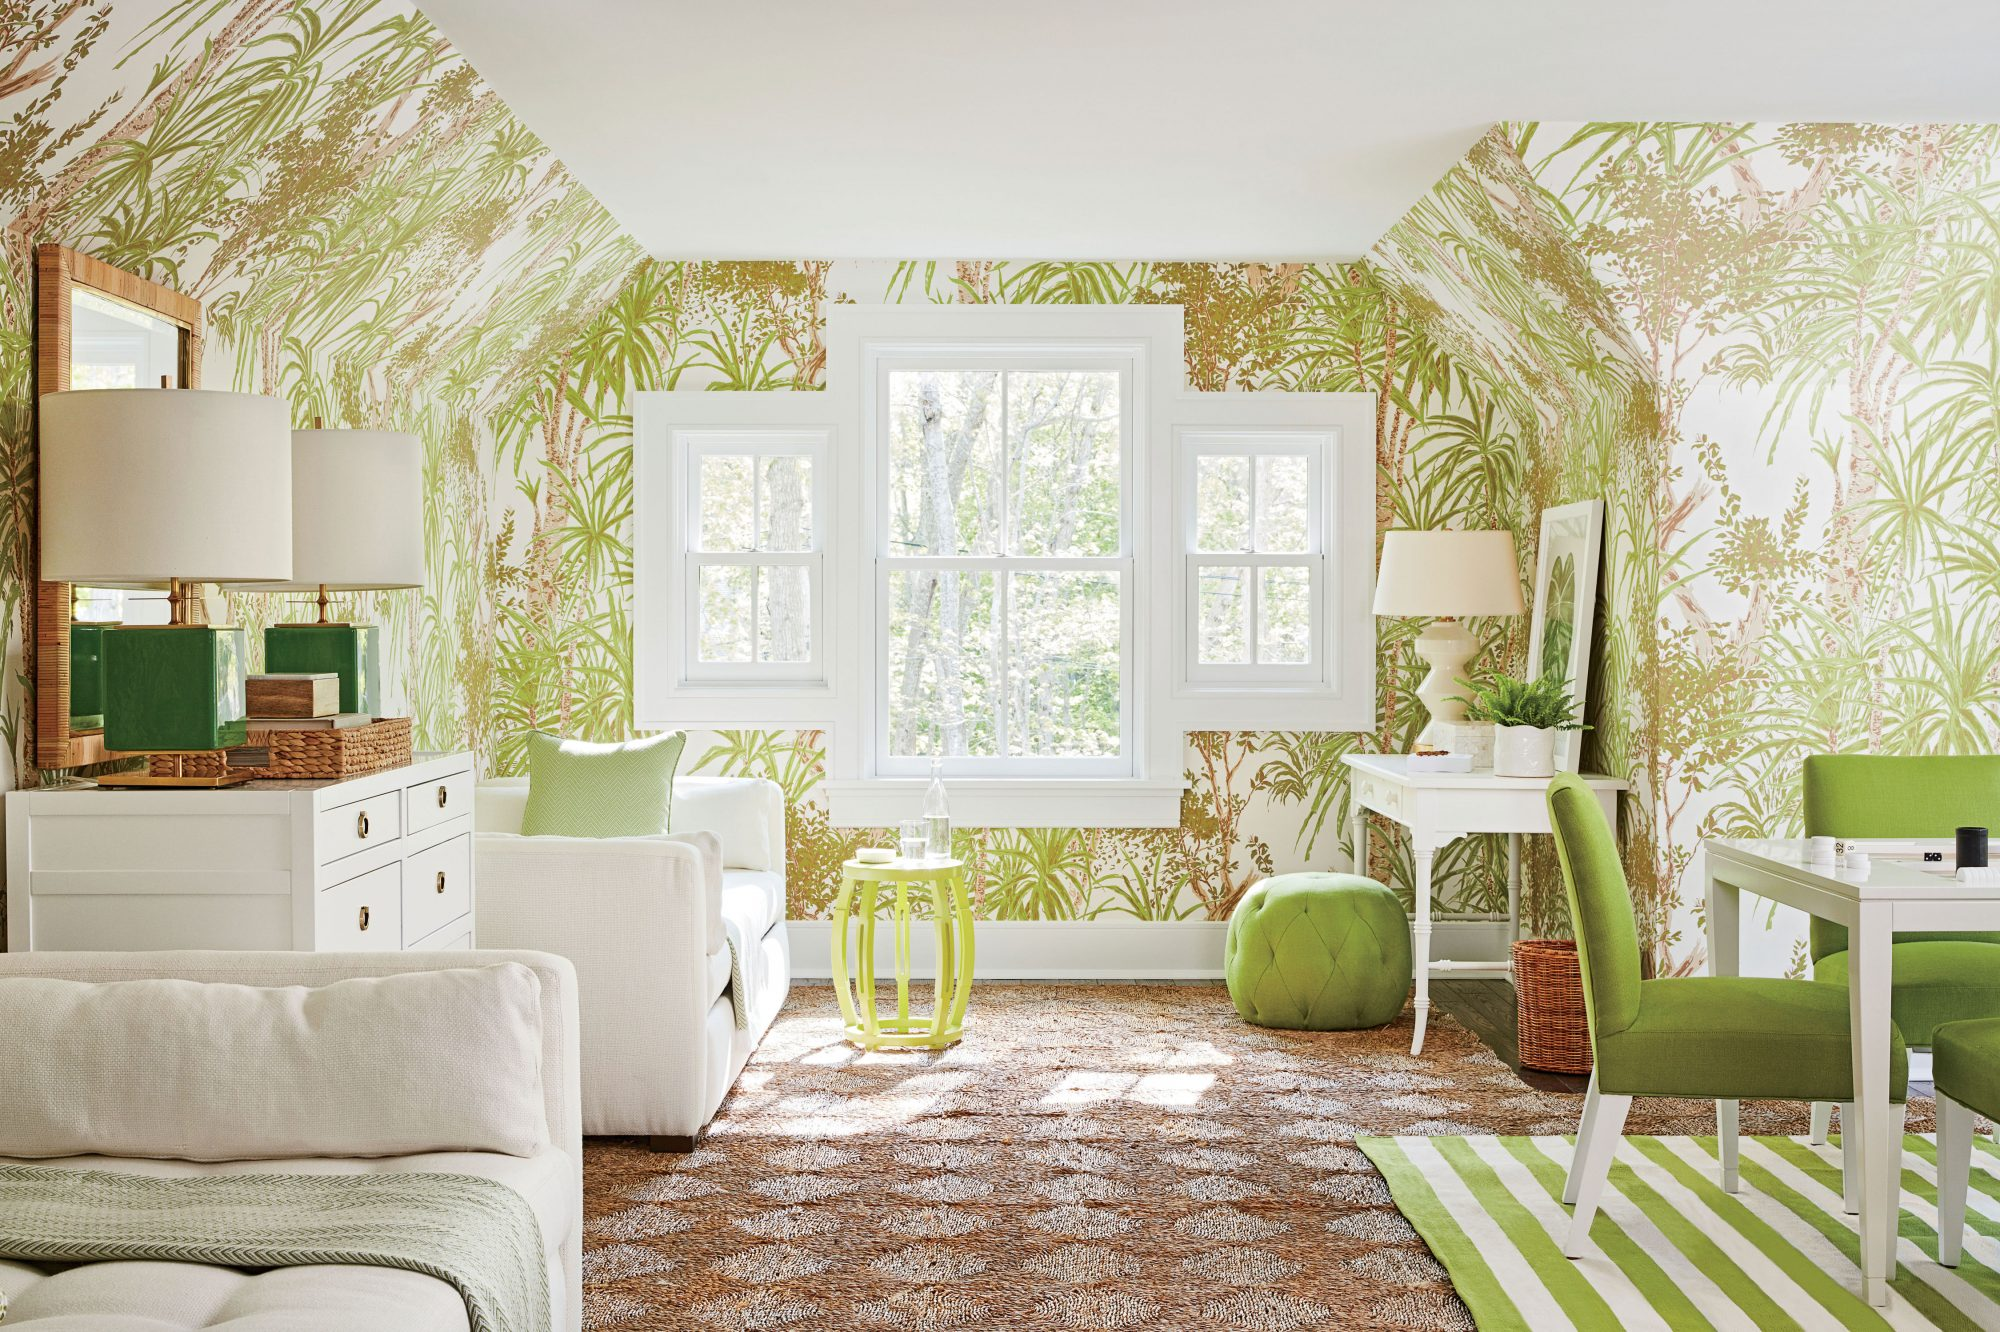 A peek out the window is all the evidence you'll need to see that brown and green are a winning (and highly complementary!) color combination. In this grown-up playroom, Meg Braff Designs' Rain Forest wallpaper climbs the walls, making the steeply...